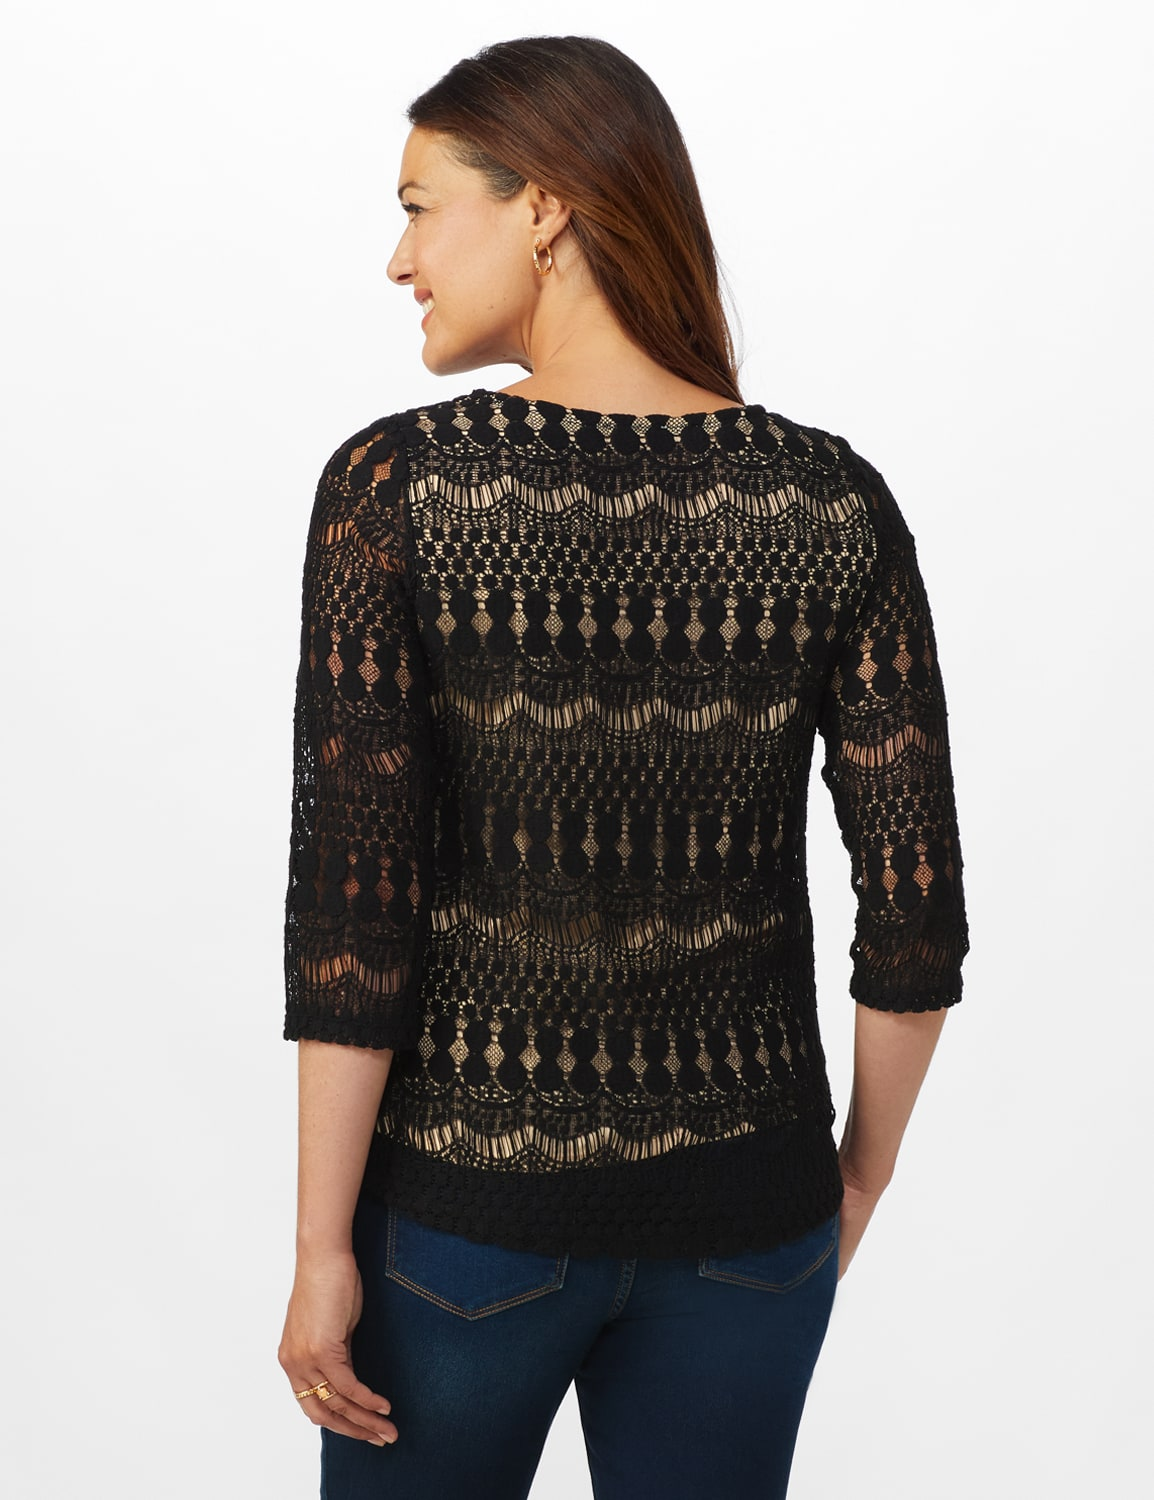 Lined Lace Knit Top - Black/Nude - Back